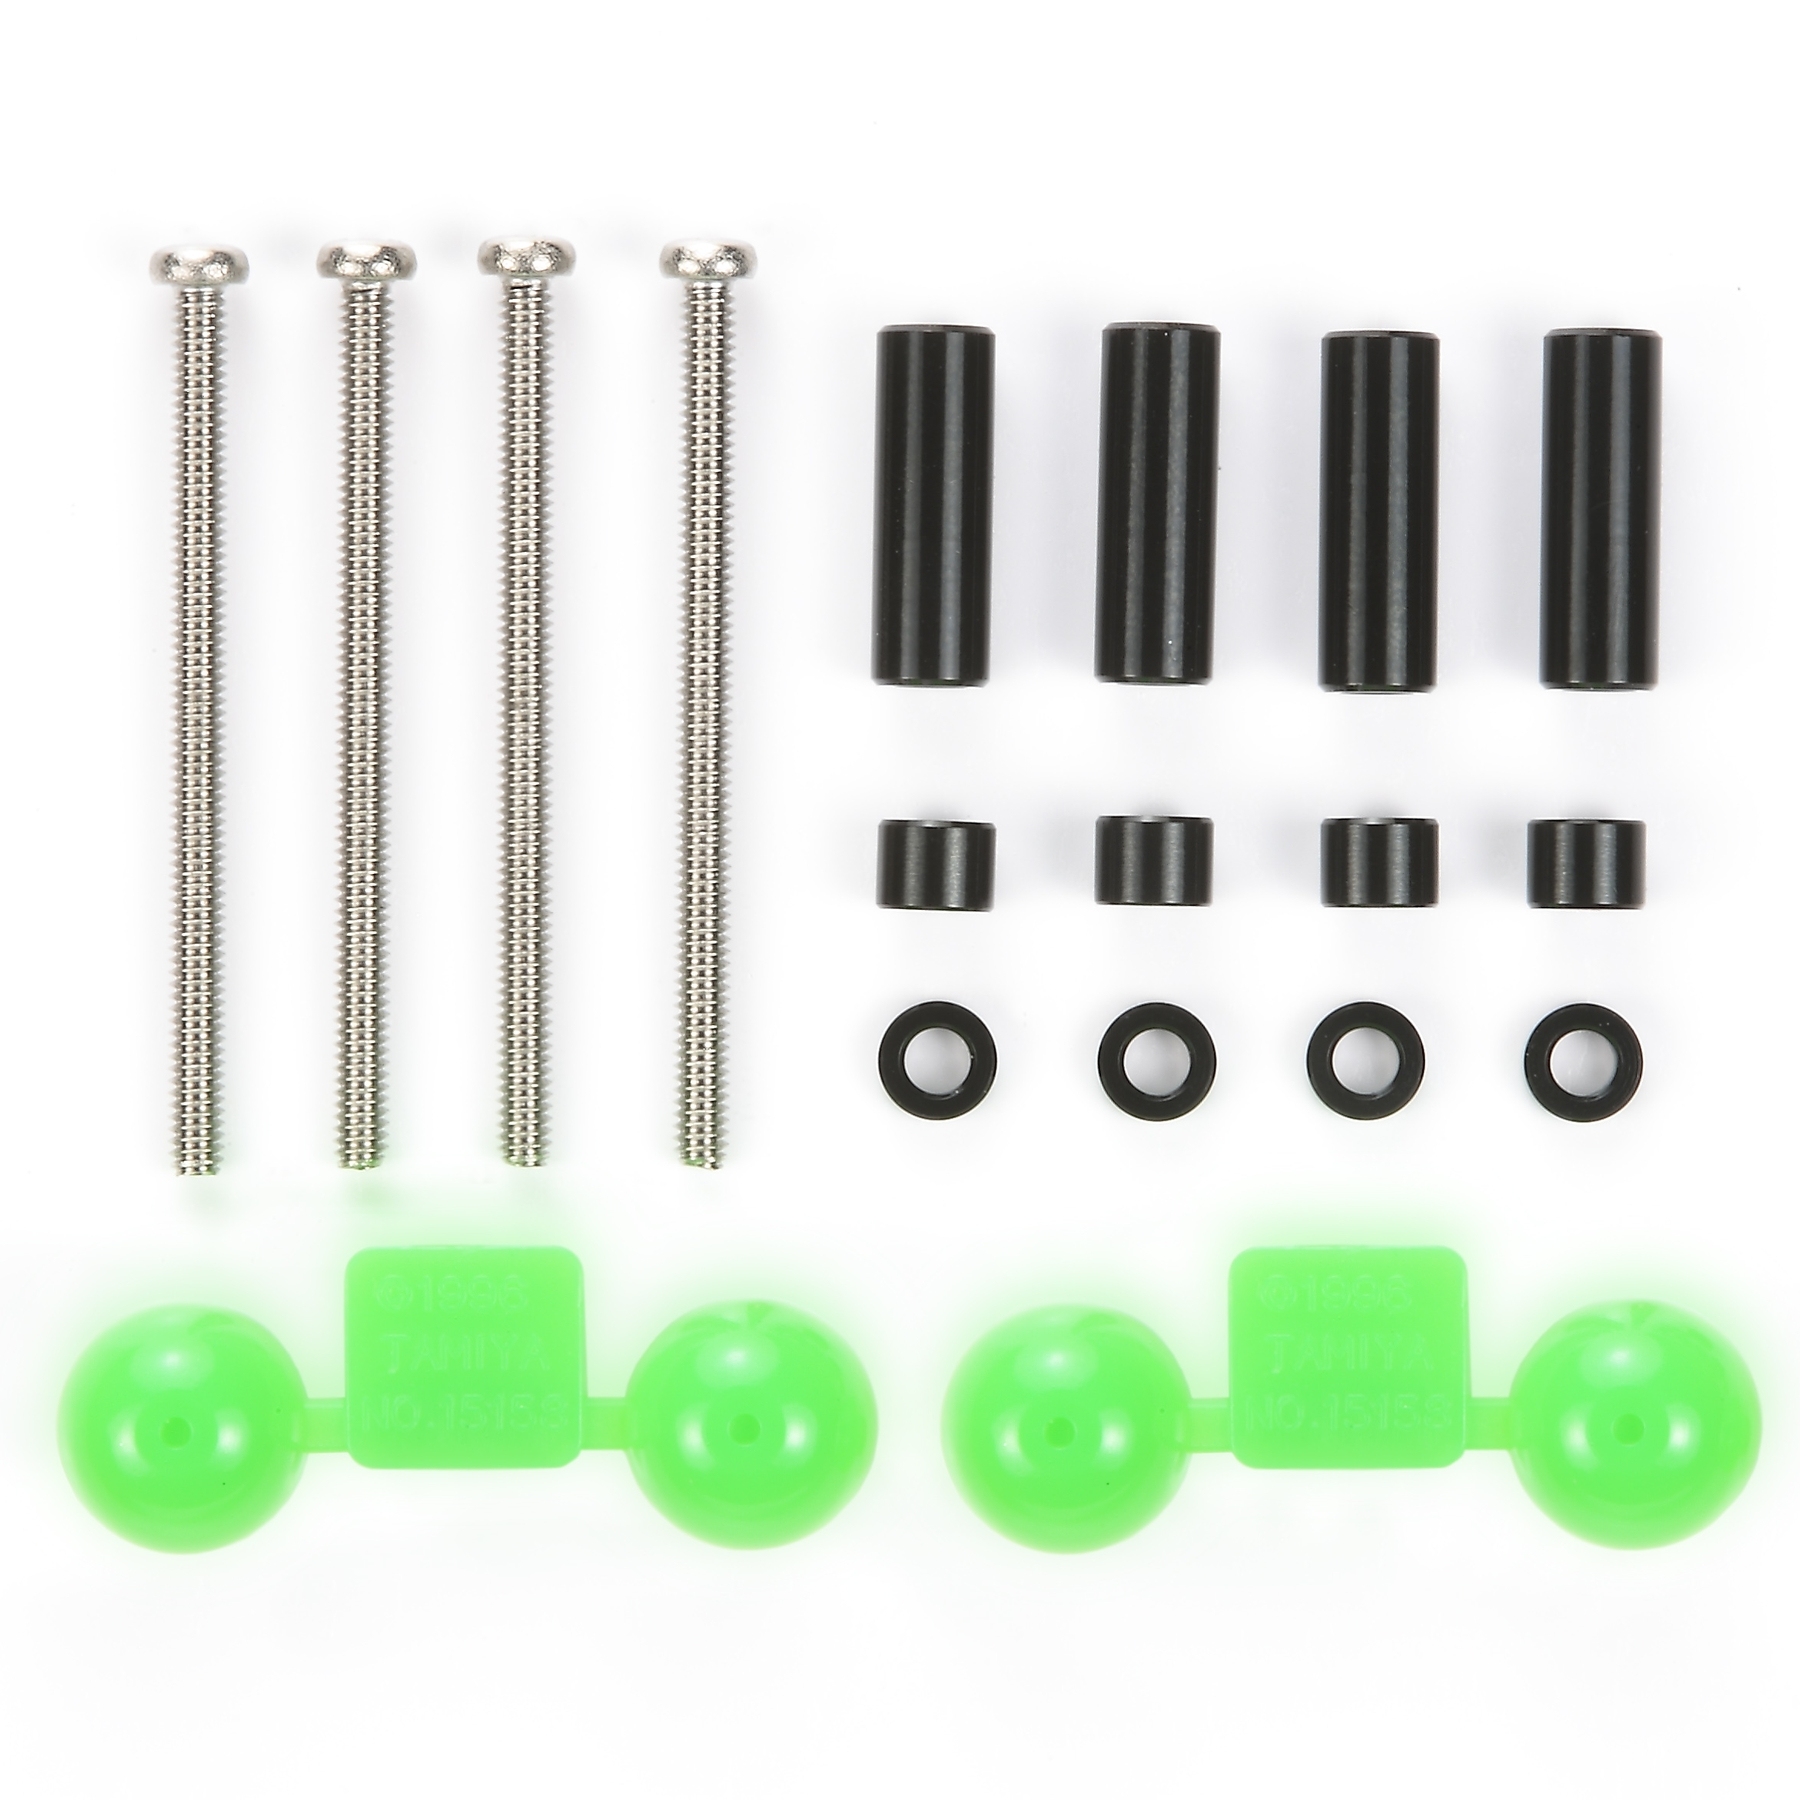 Jr Aluminum Spacer Set Black